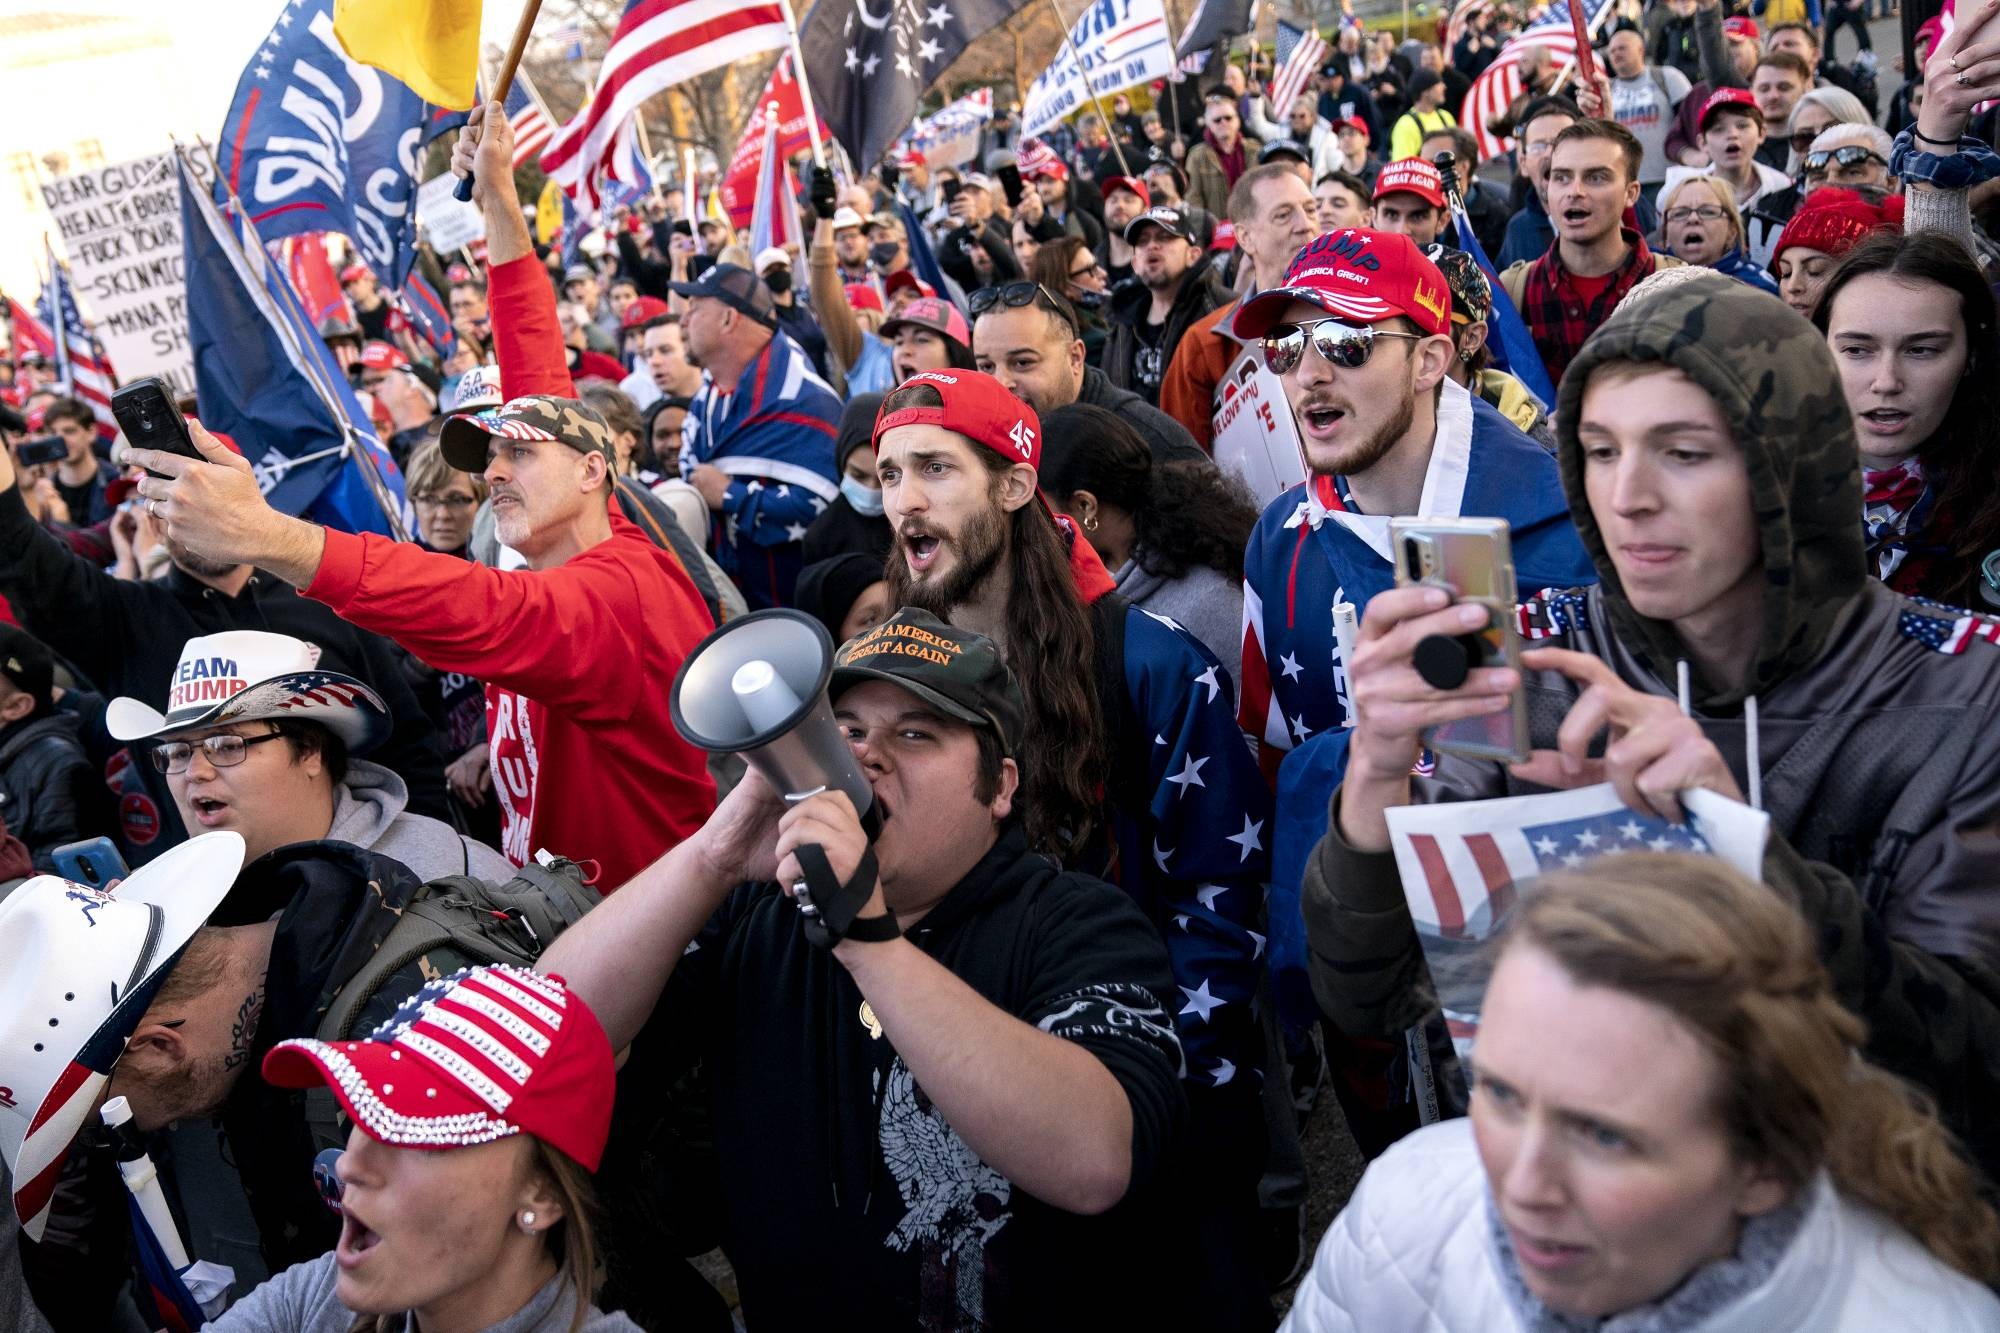 Supporters of President Donald Trump rally in Washington on Saturday. | STEFANI REYNOLDS / THE NEW YORK TIMES